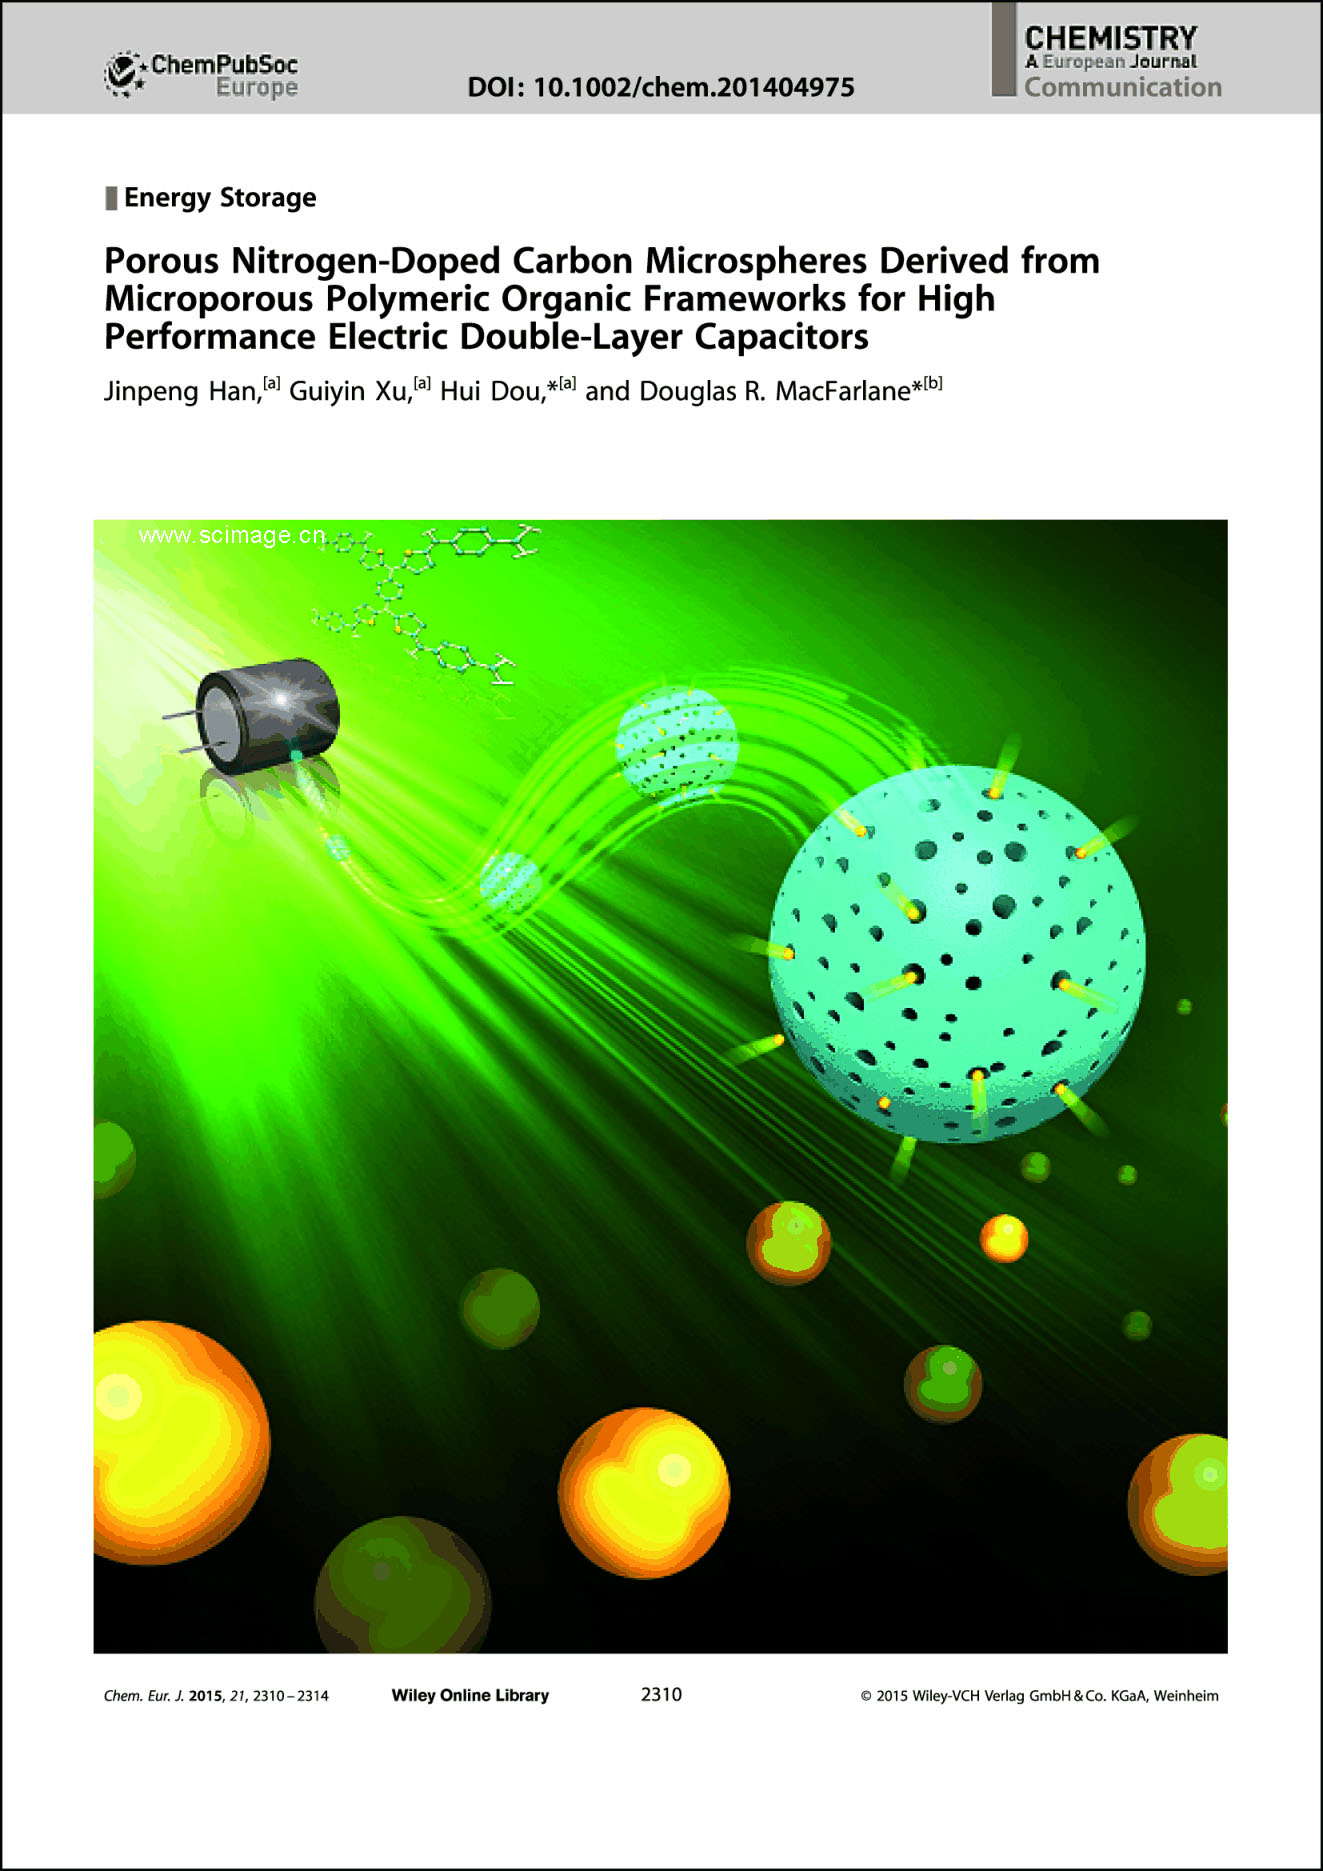 Frontispiece: Porous Nitrogen-Doped Carbon Microspheres Derived from Microporous Polymeric Organic Frameworks for High Performance Electric Double-Layer Capacitors